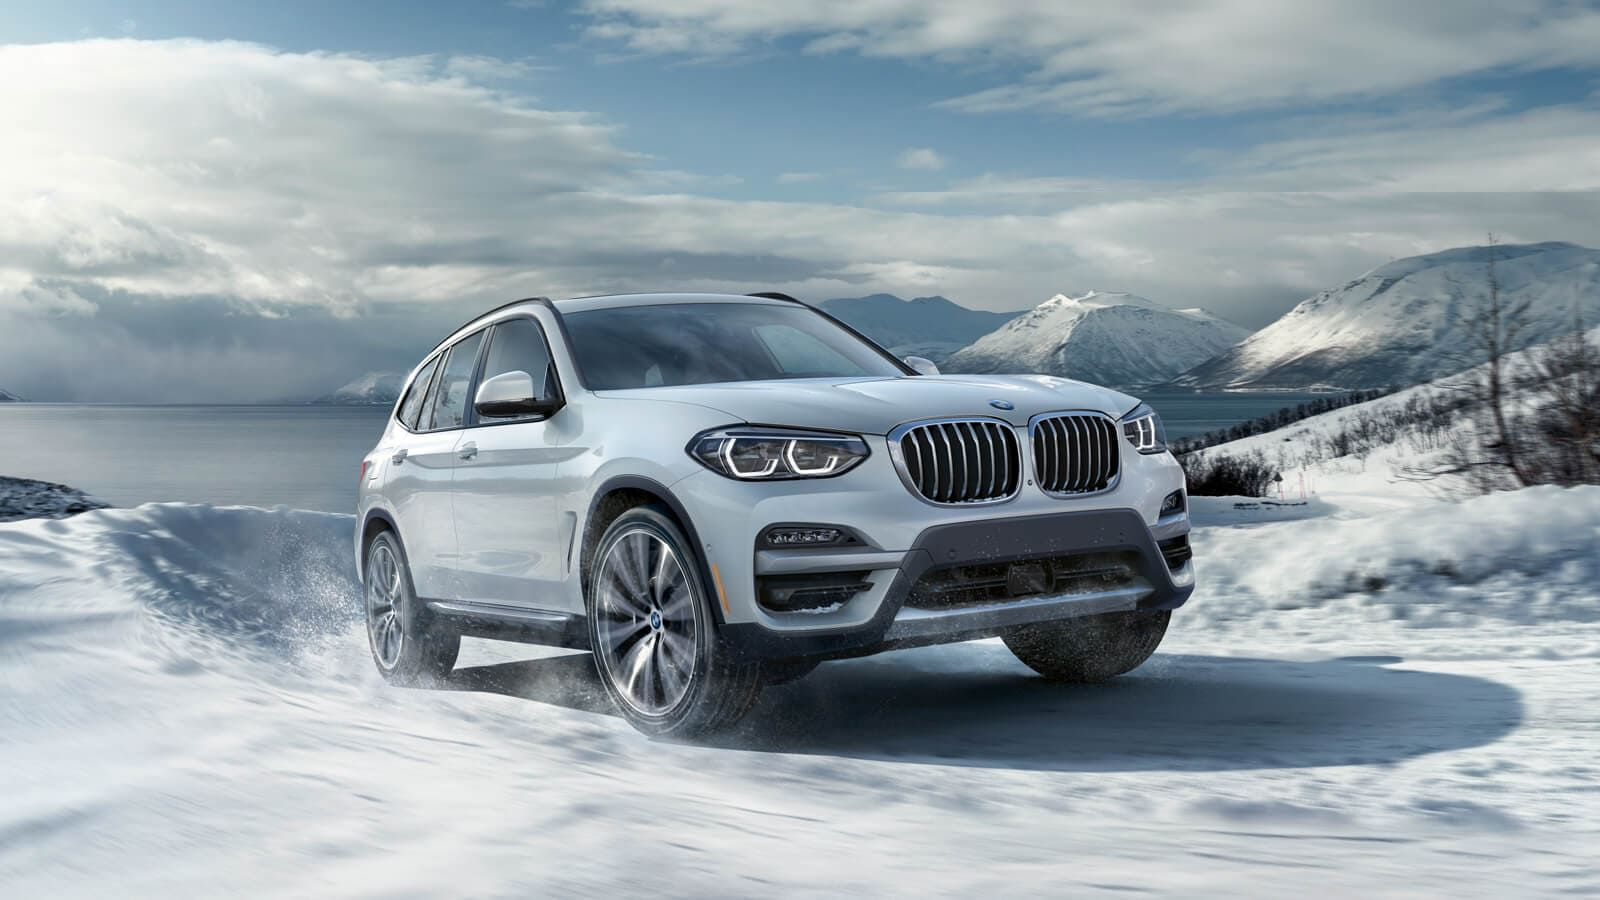 2021 BMW X3 Review, Pricing, and Specs